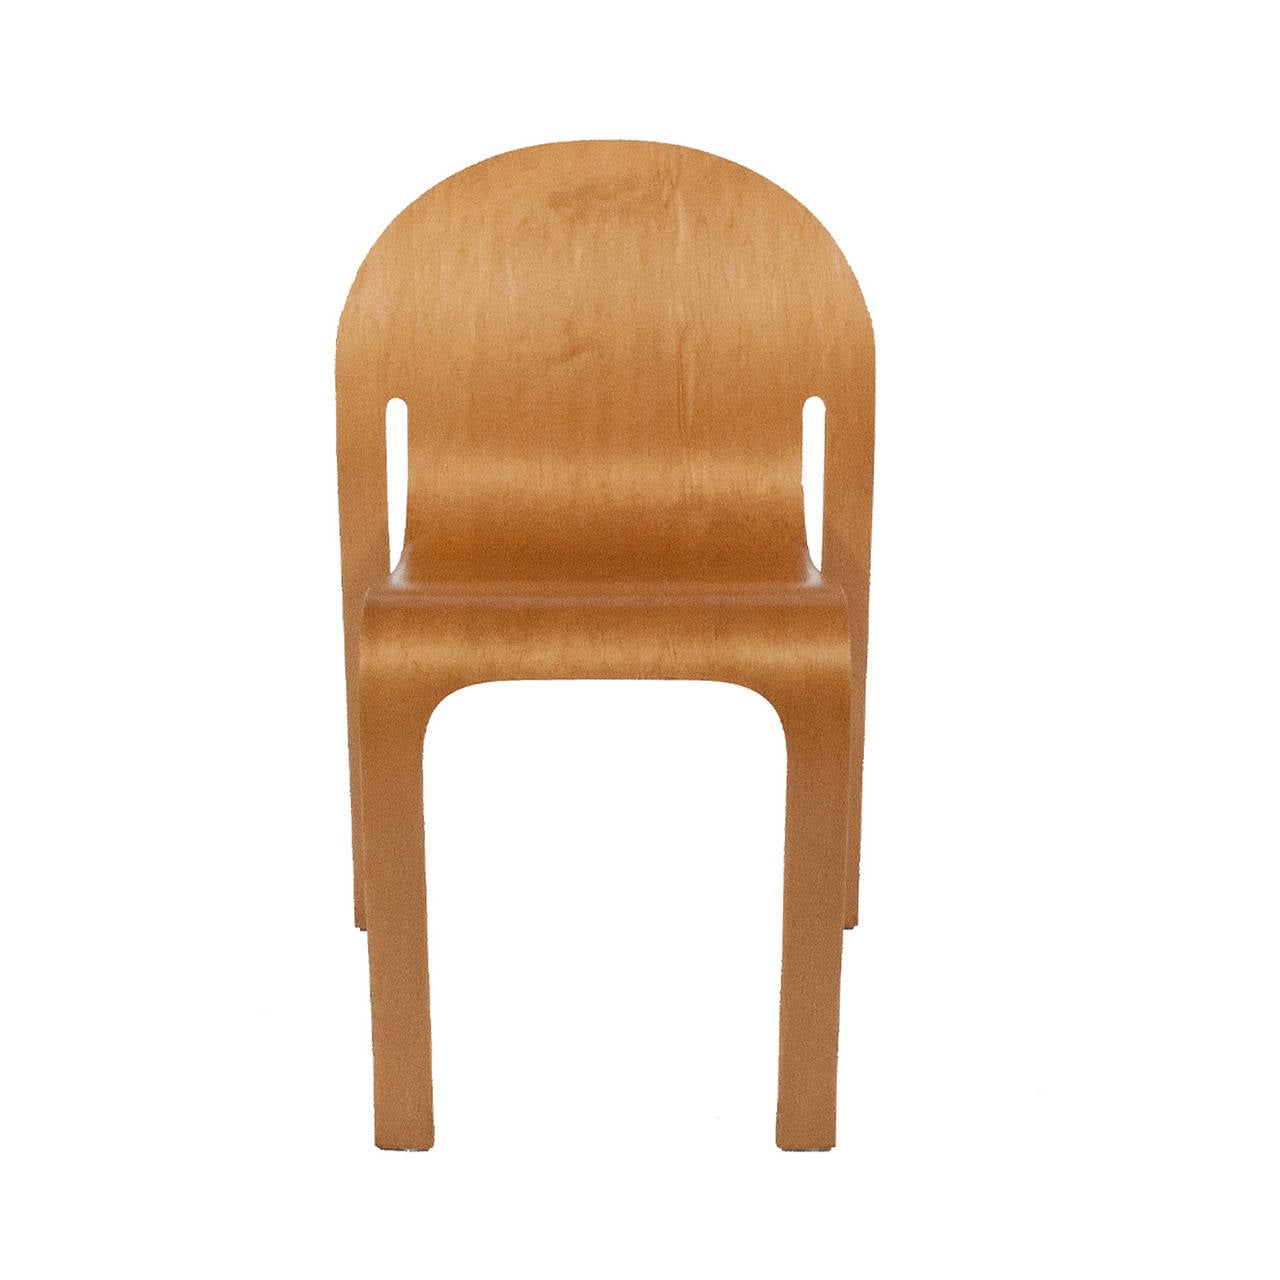 ecoeden chairs by peter danko at stdibs - ecoeden chairs by peter danko